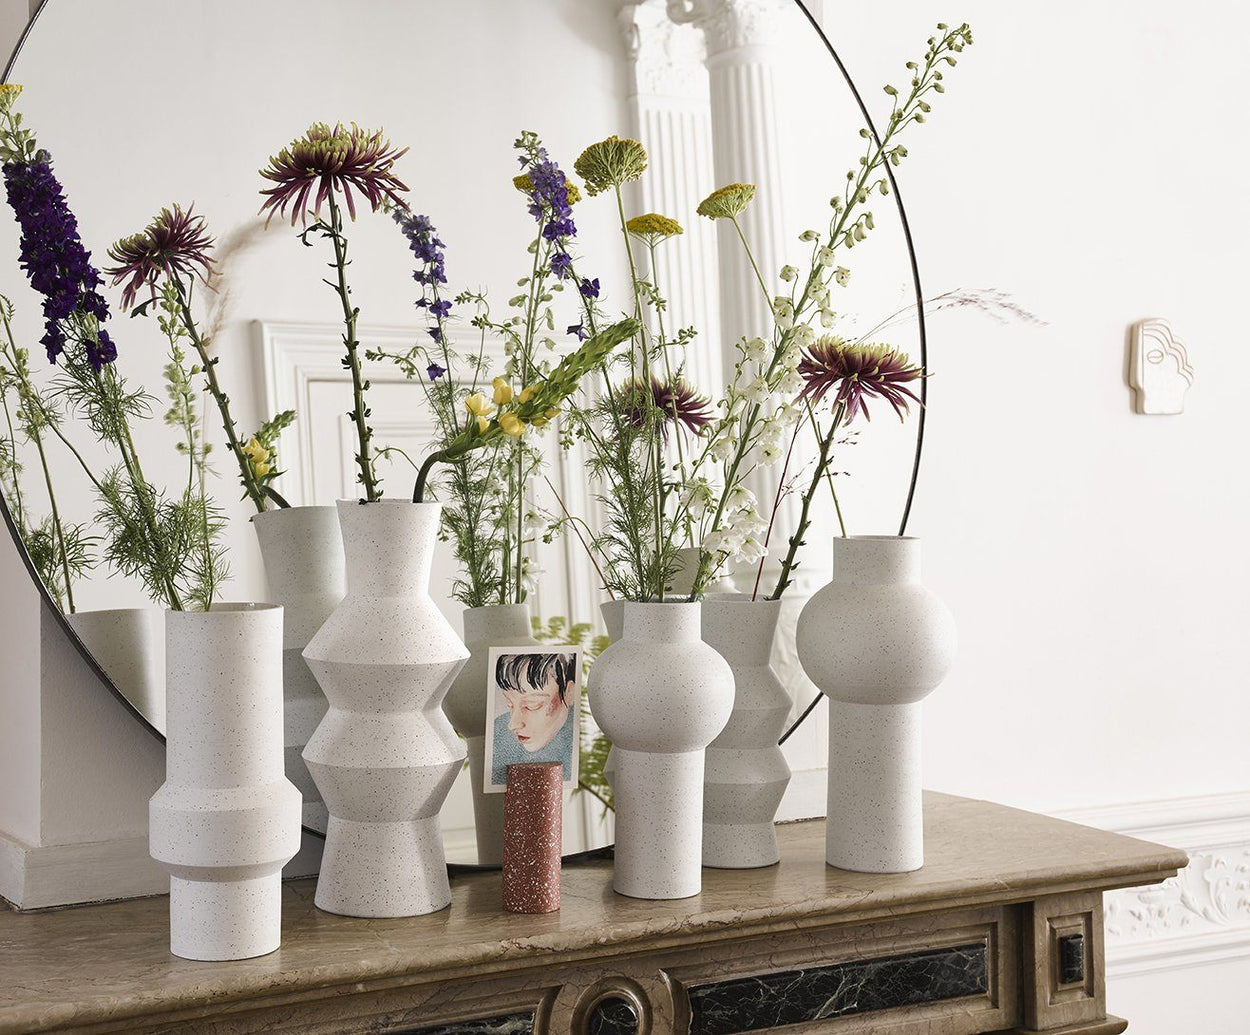 SPECKLED CLAY VASE WHITE I am Nomad